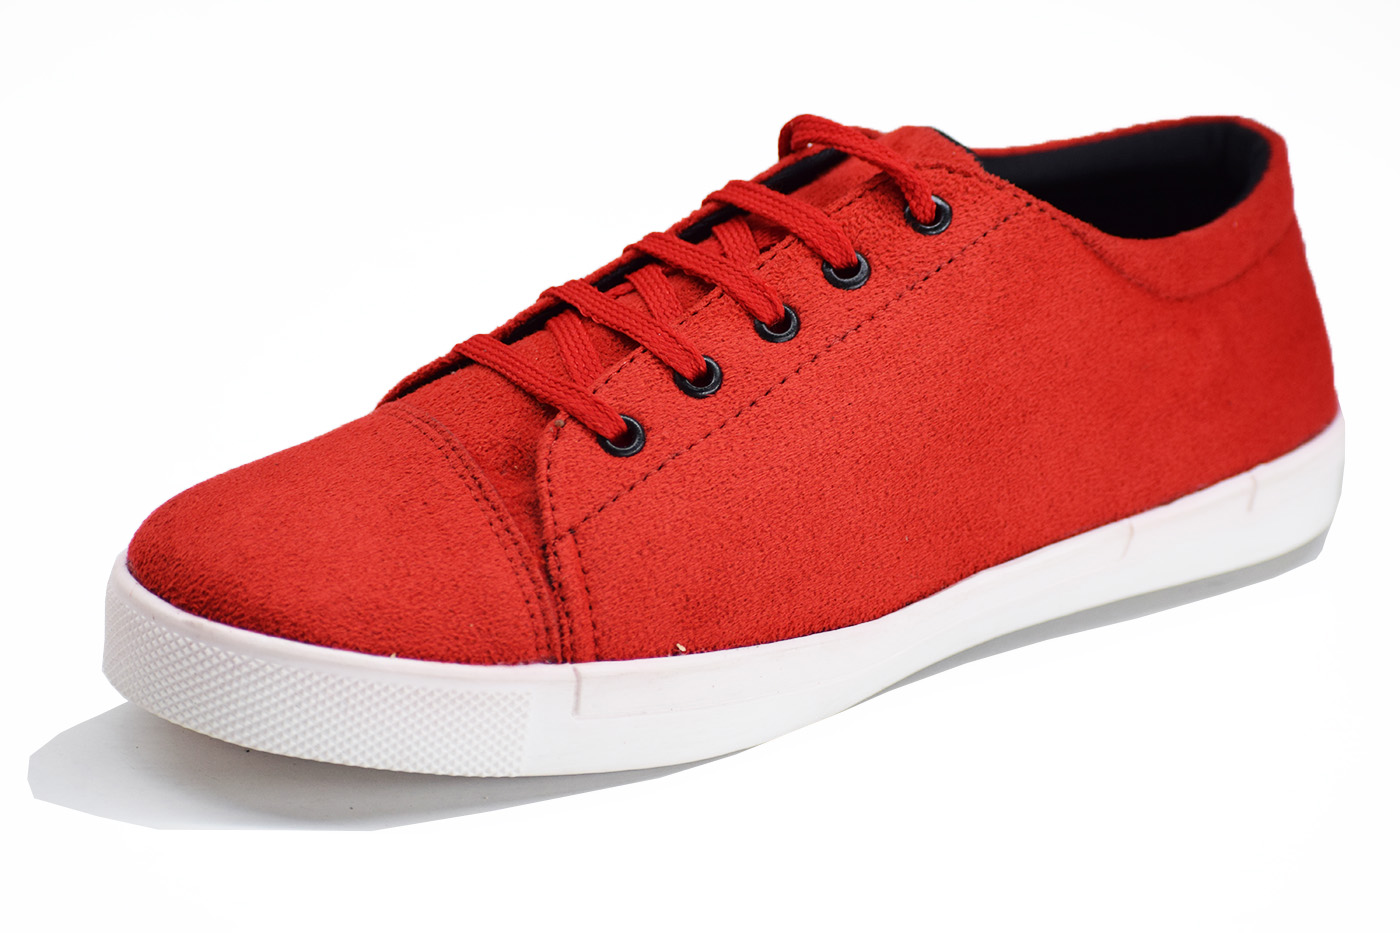 Simple Red Color Shoe-33281